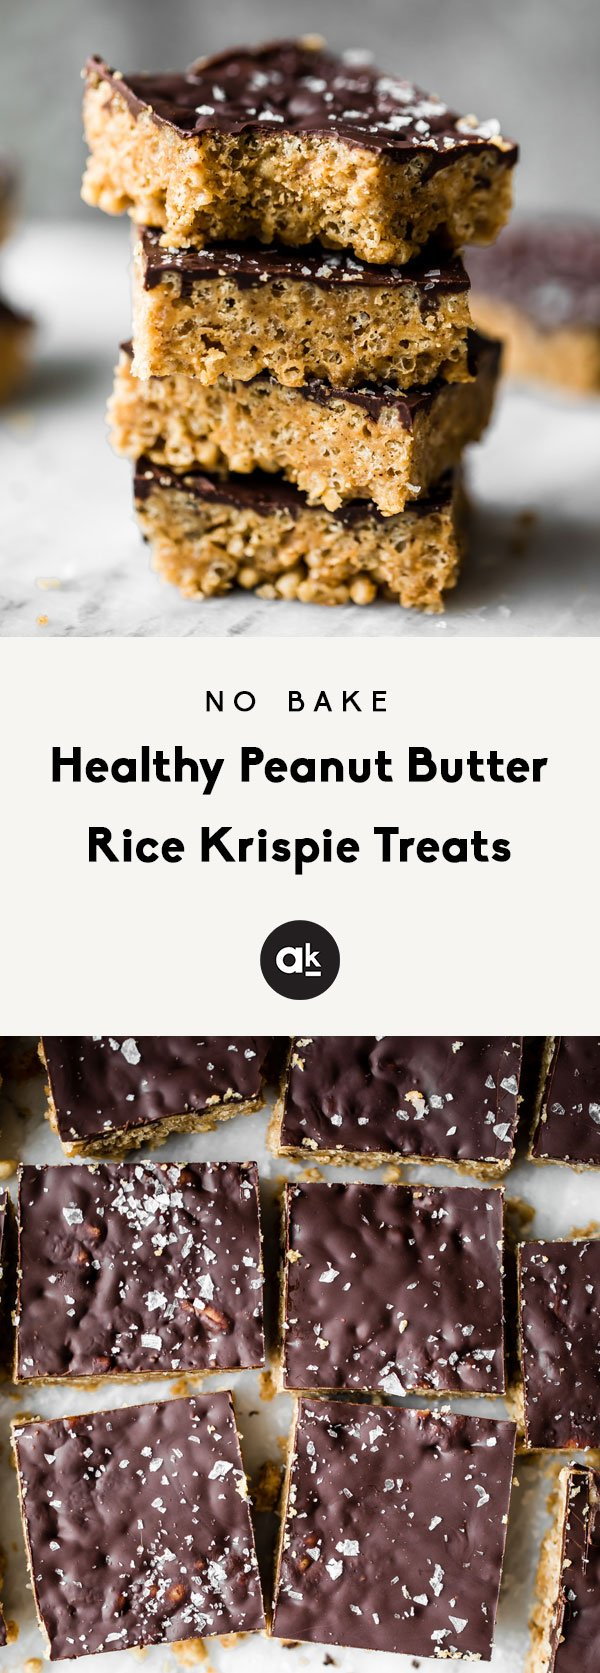 Healthy Rice Krispie Treats made with peanut butter, coconut oil, maple syrup and brown rice krispies. These vegan and gluten free treats are topped with dark chocolate and sea salt for an indulgent treat that tastes just like a crunchy peanut butter cup. Options to add a bit of protein powder to make these a great post workout treat!